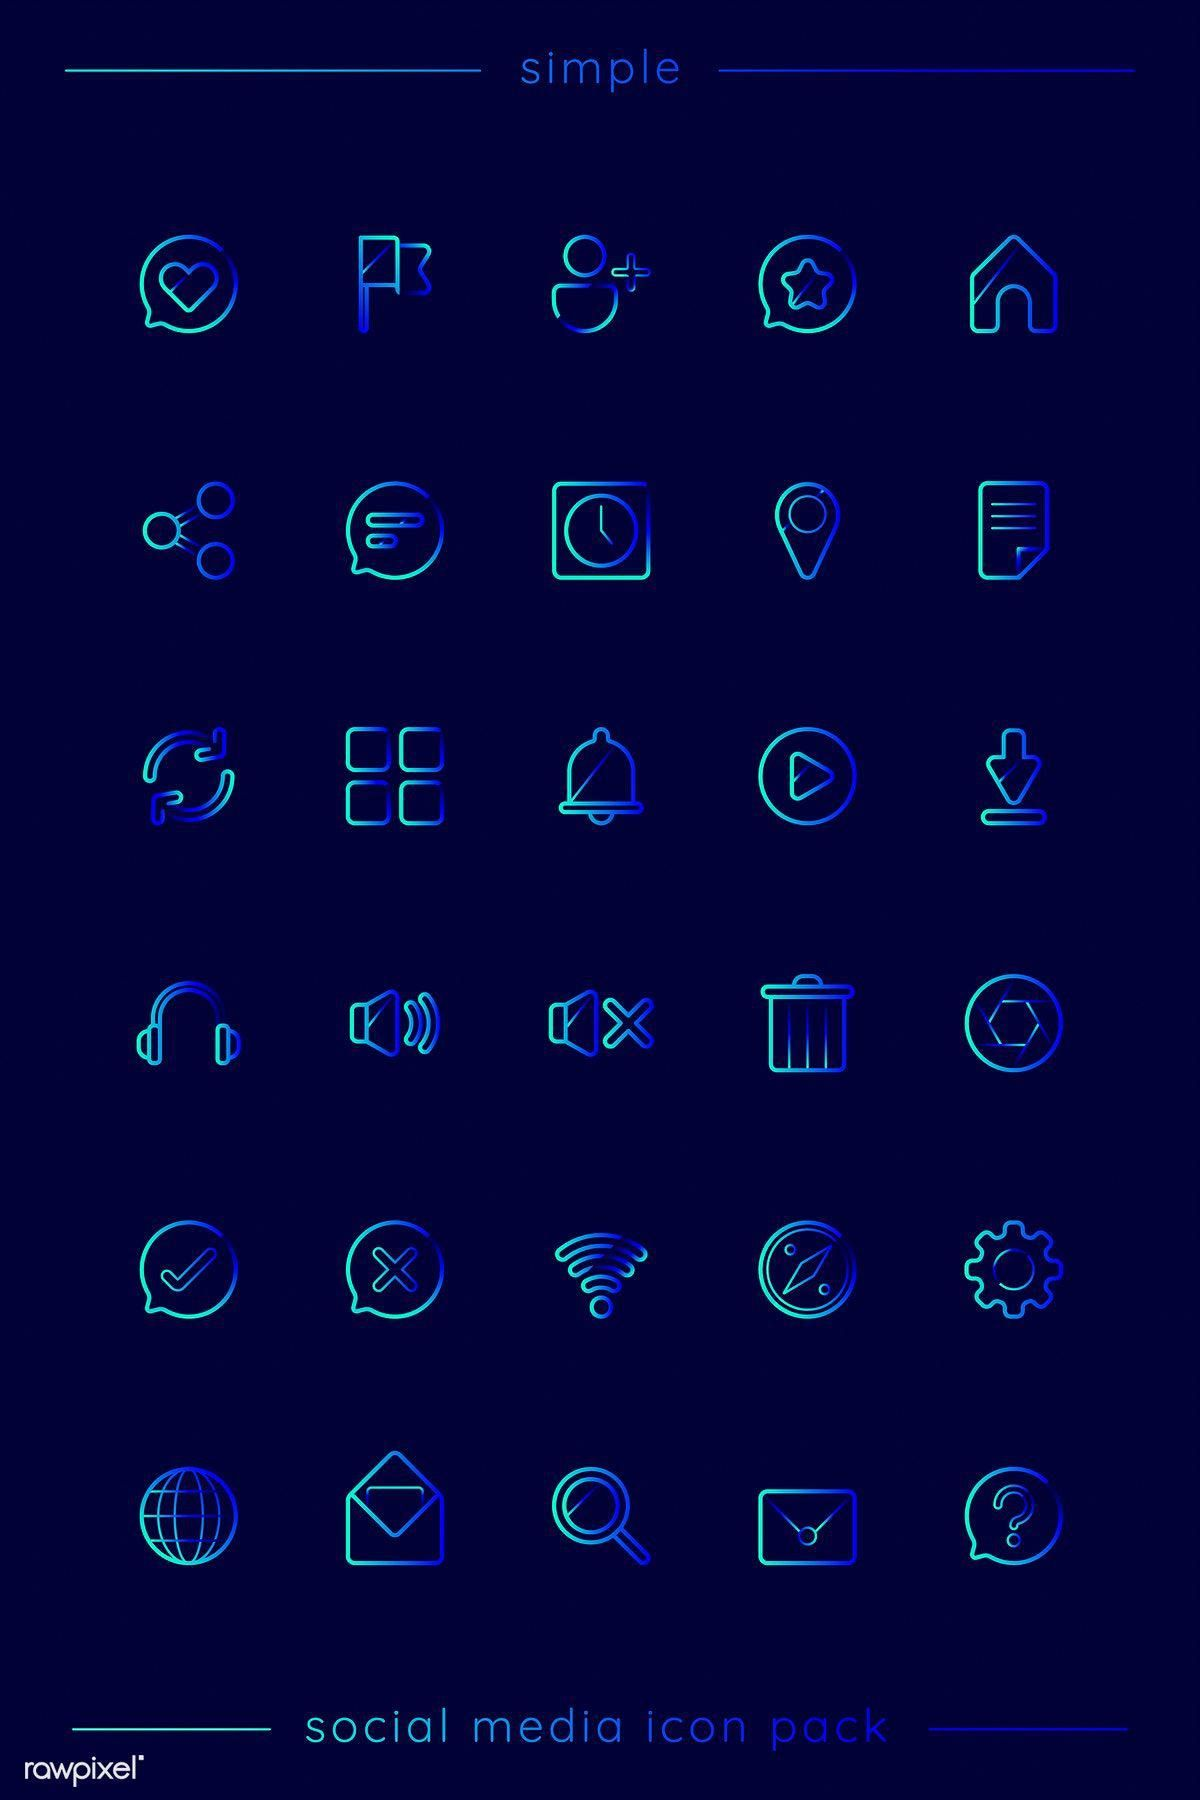 Social media icon pack vector premium image by rawpixel